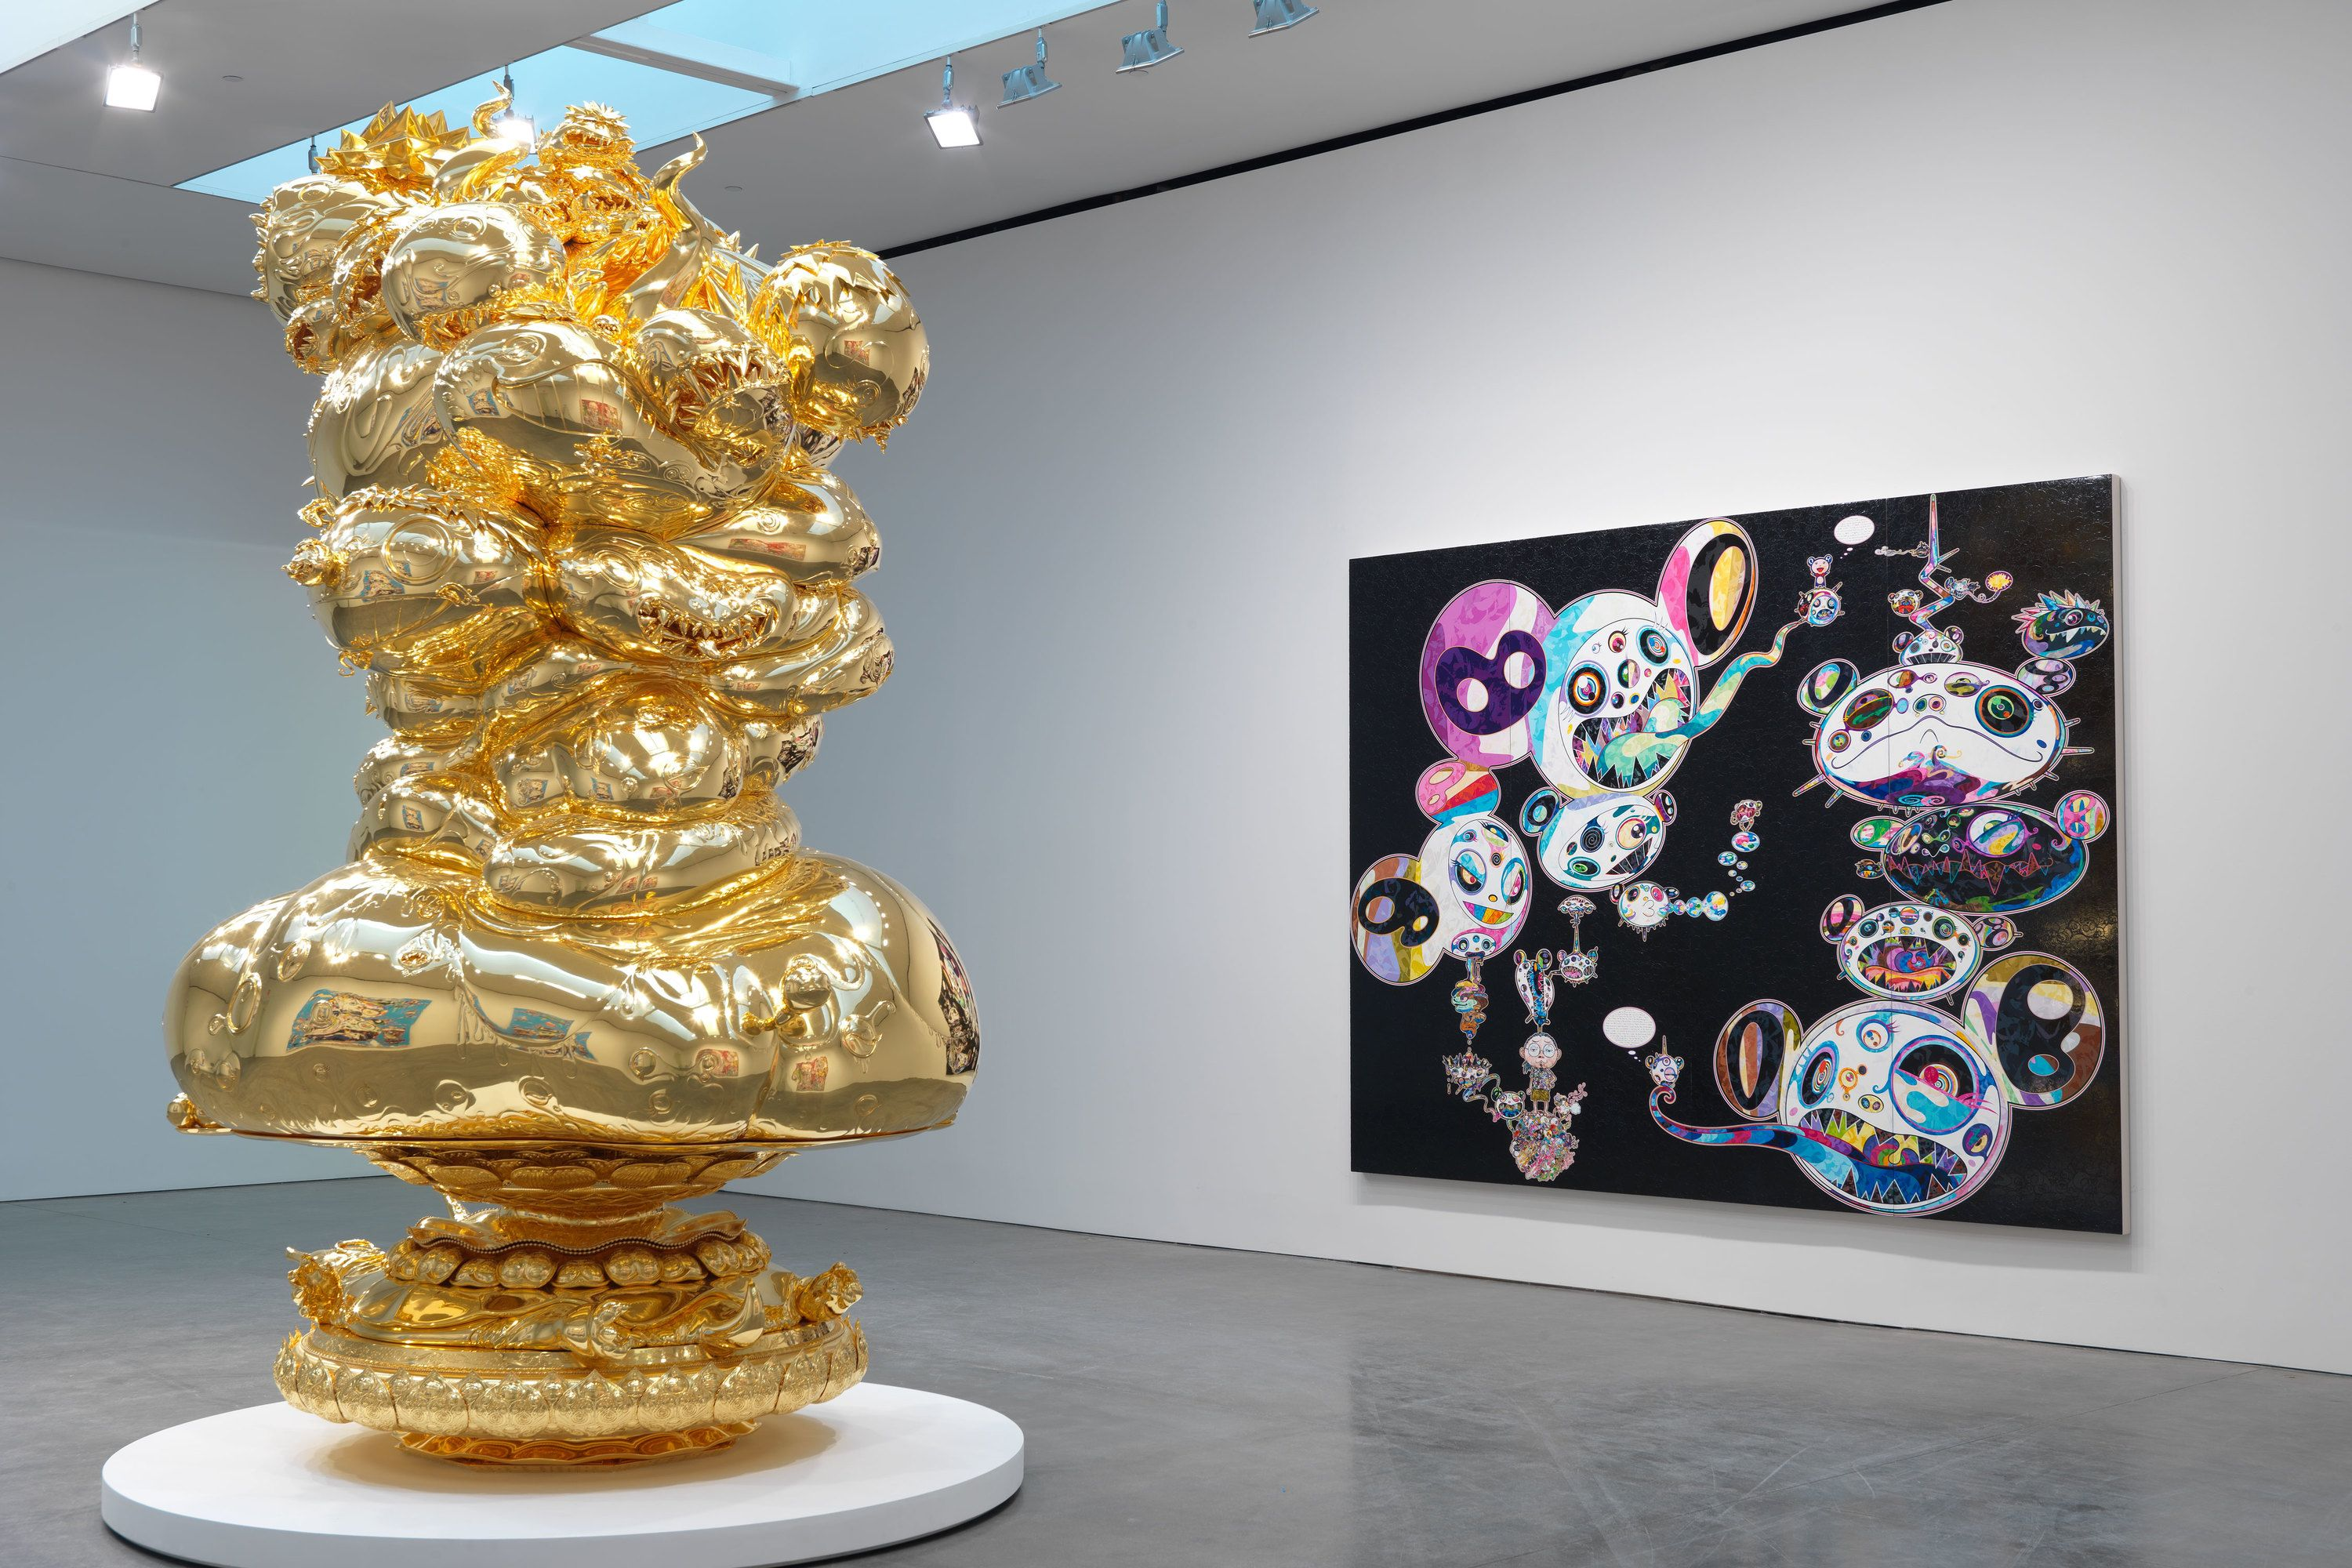 Find works by established and up and coming artists at the best art galleries in nyc